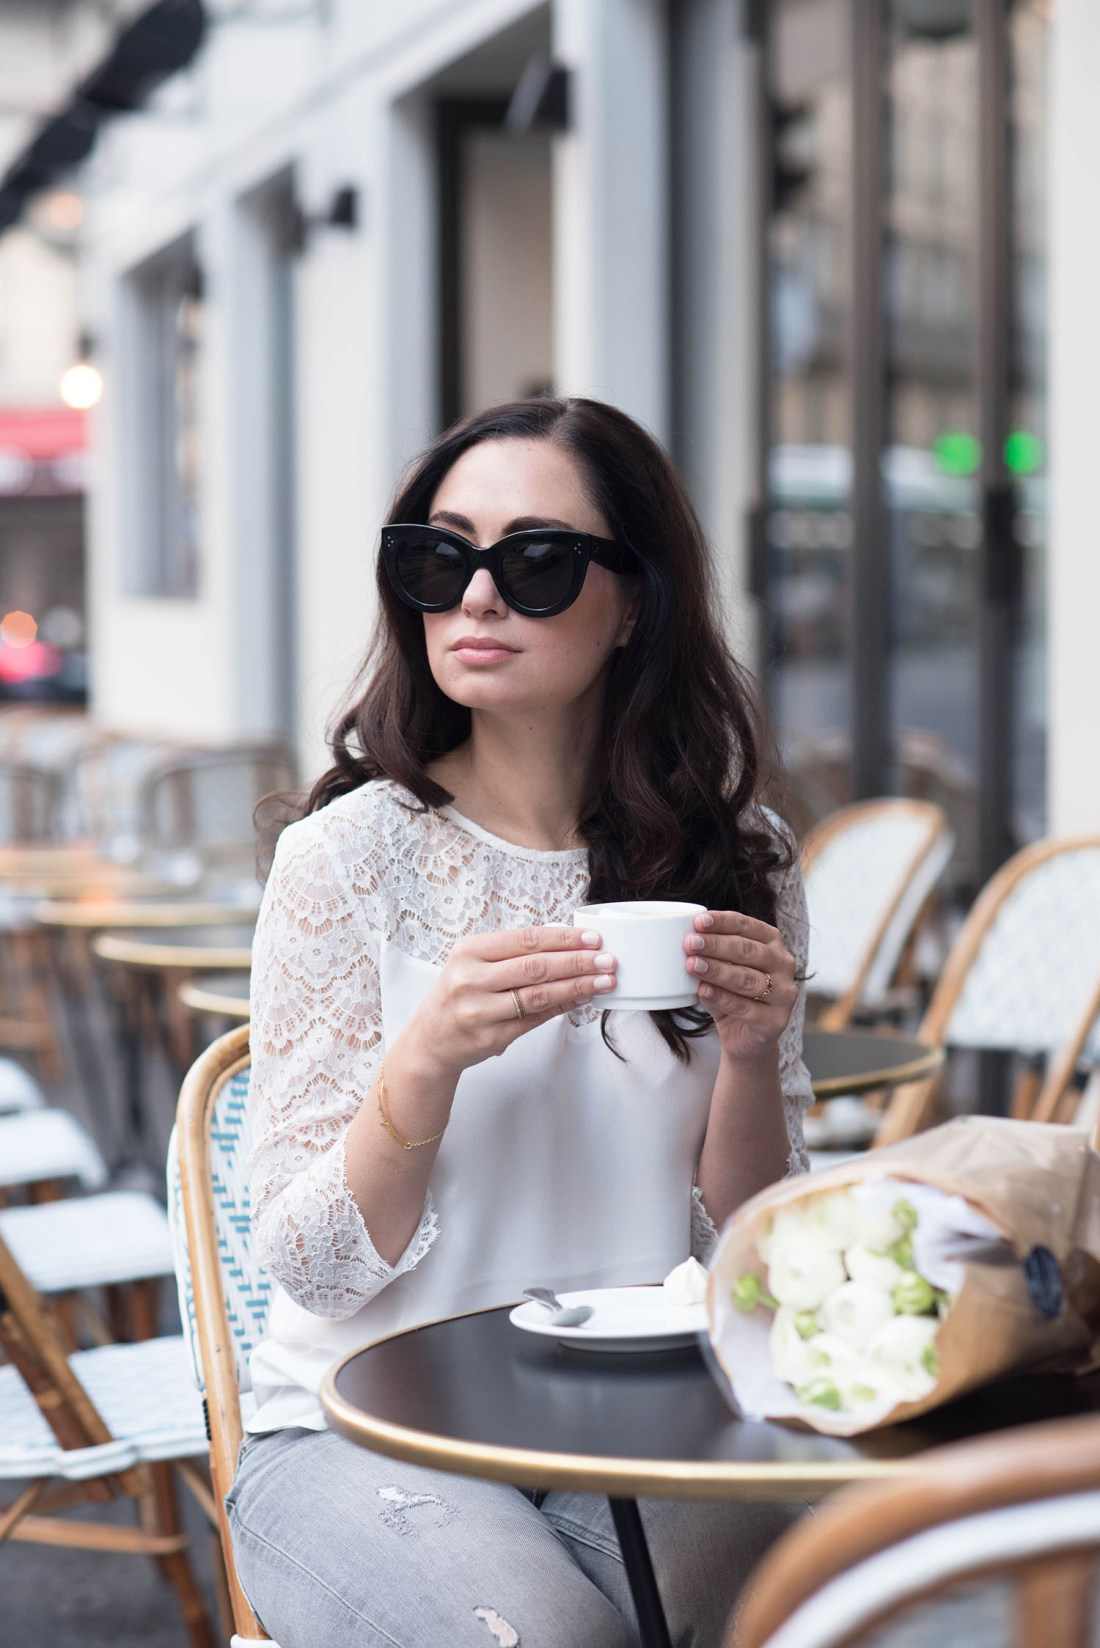 Winnipeg fashion blogger Cee Fardoe of Coco & Vera sits outside at Maison Marie in Paris, holding her coffee cup and wearing a Sezane blouse